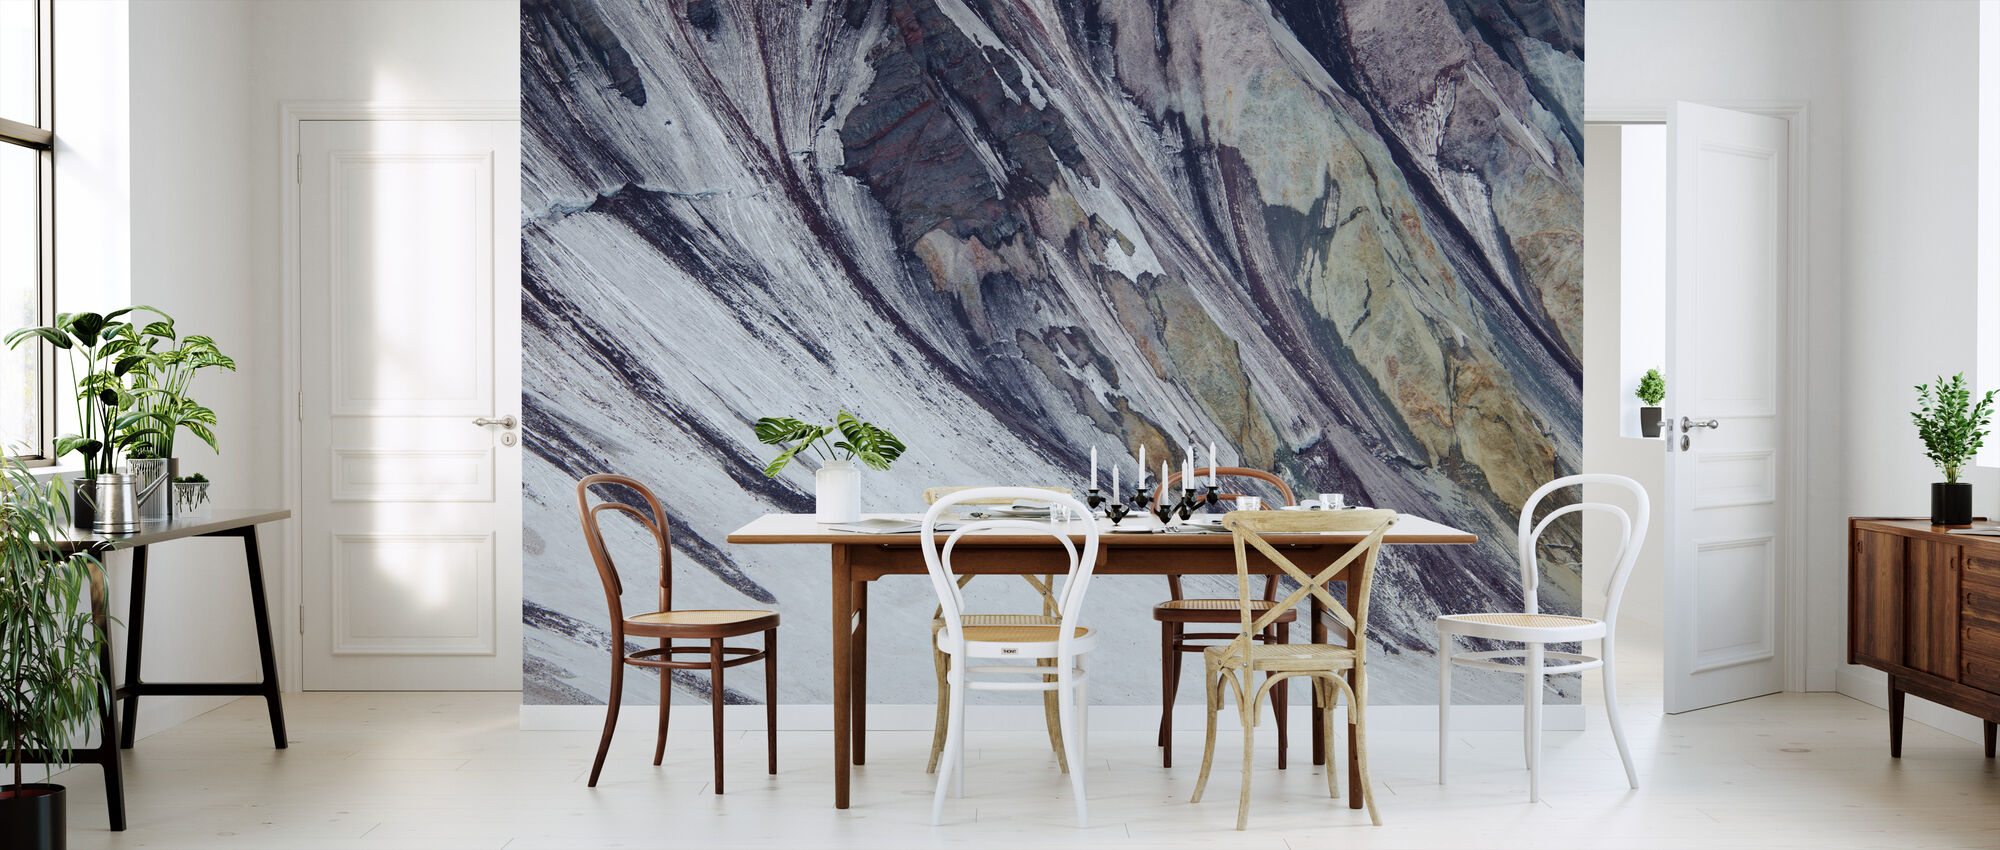 Colorful Layers of Rock, Mount St Helens' Crater - Wallpaper - Kitchen